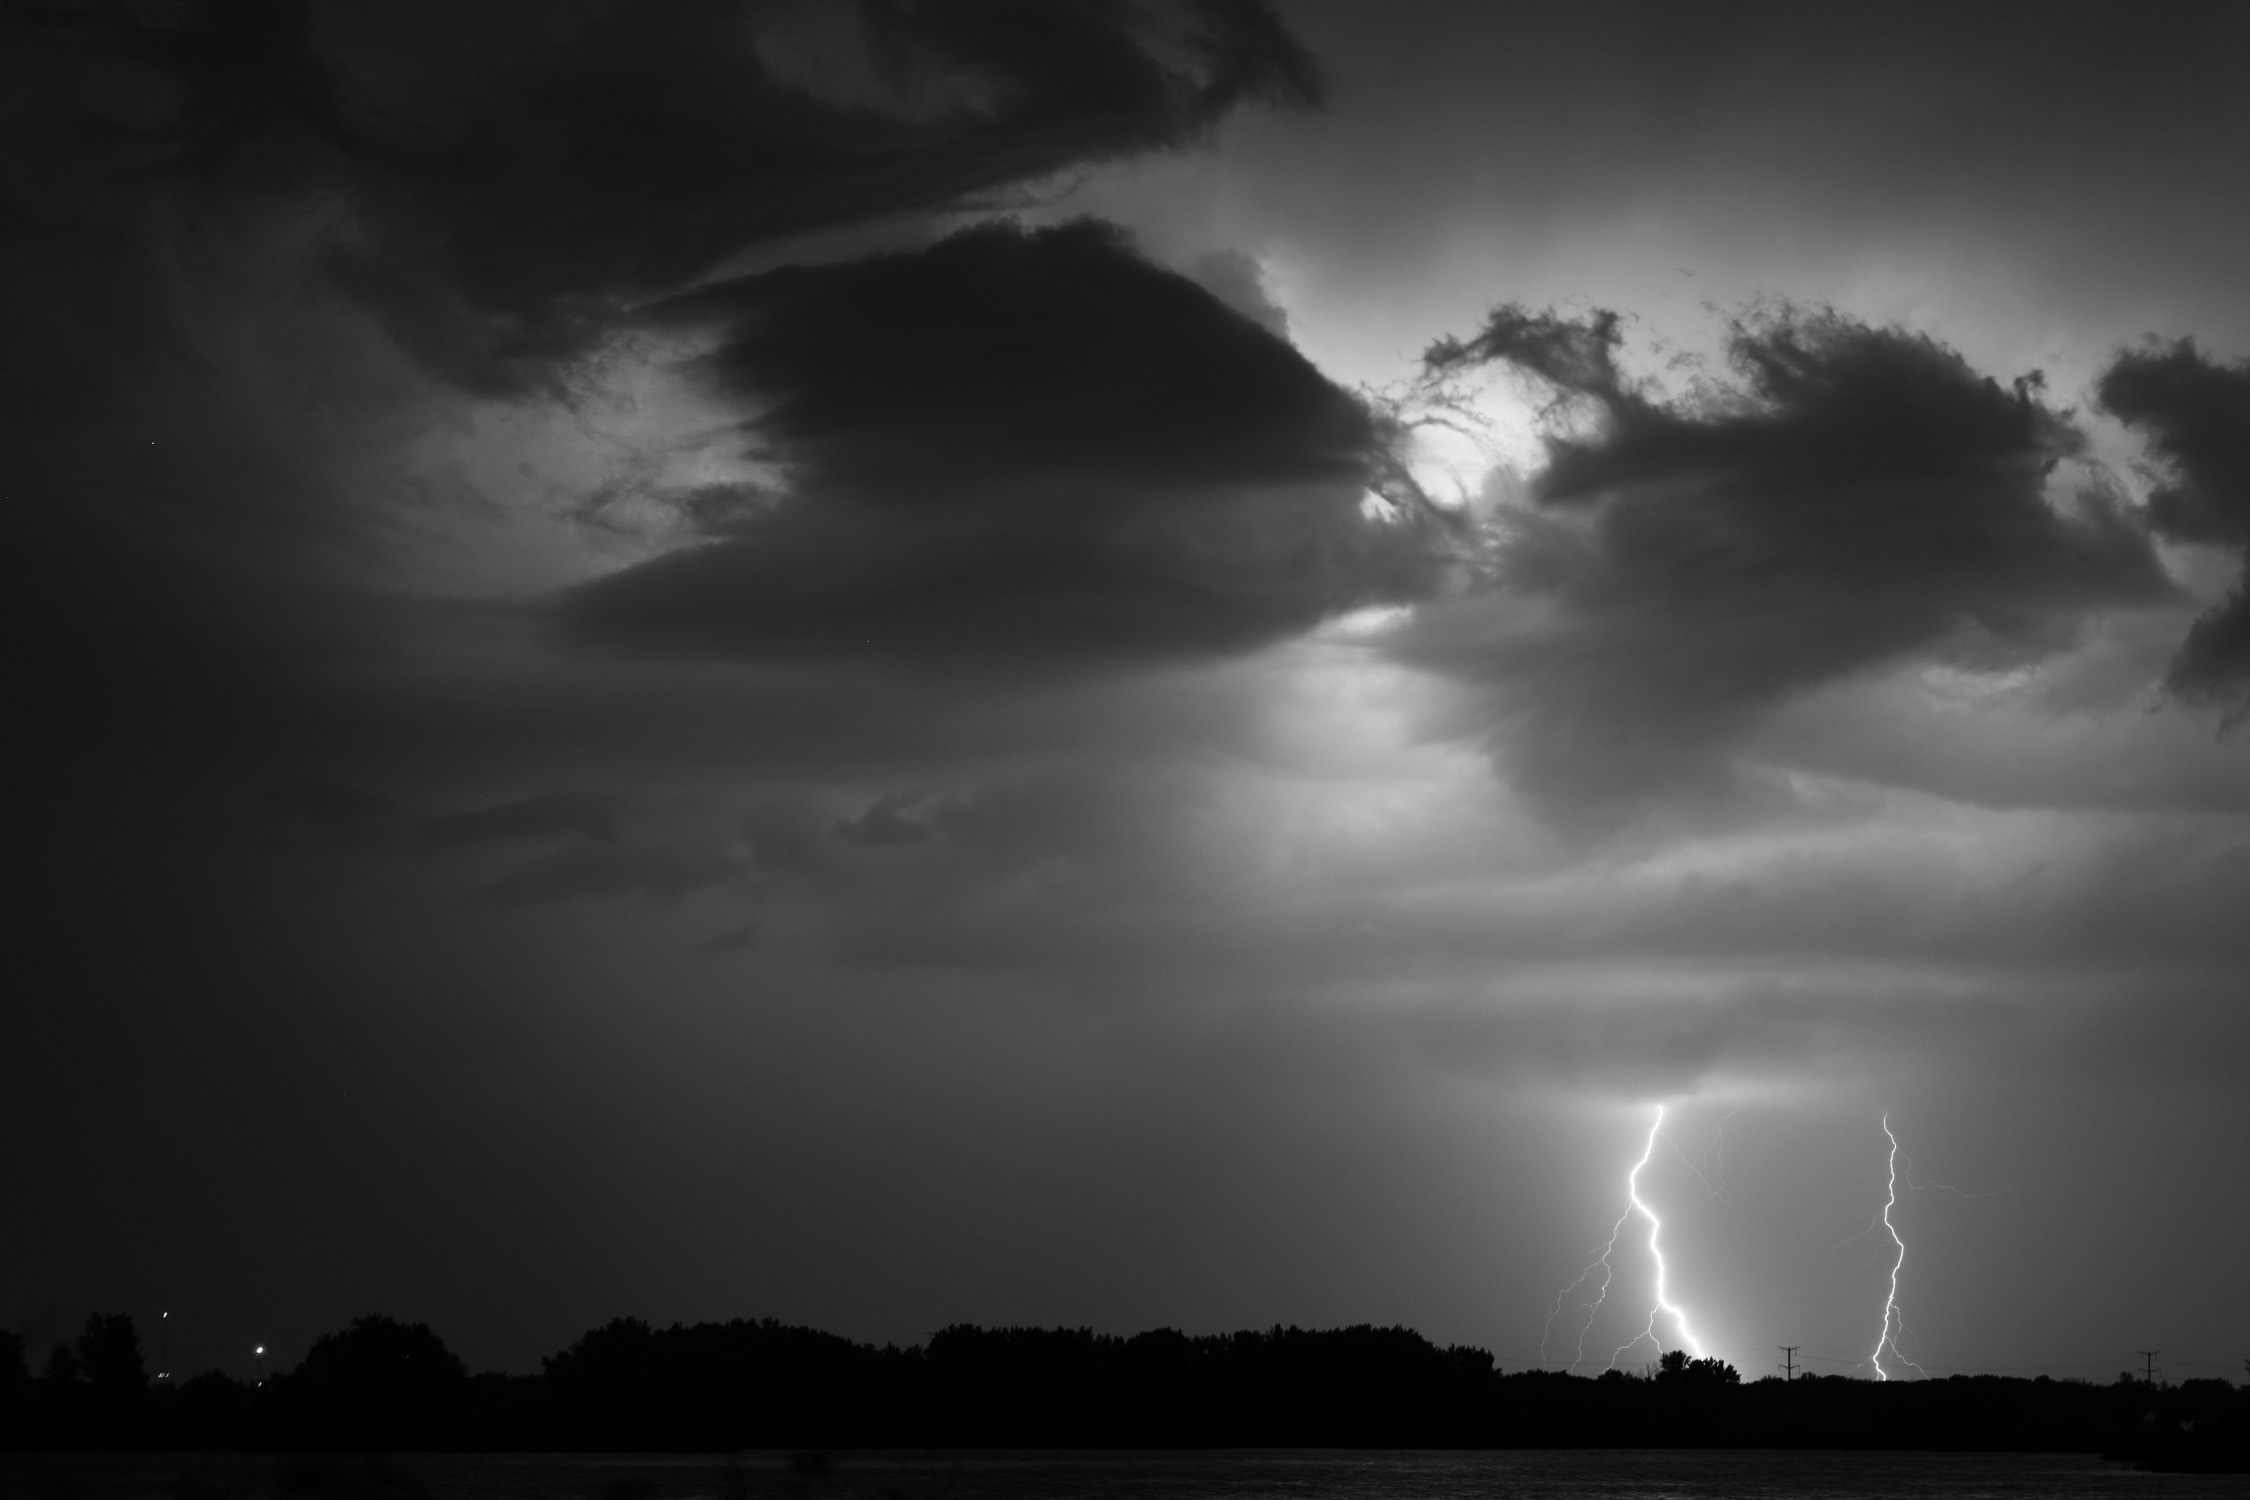 Jesus Orduna, Rice University, took this photo from the bird watching area by Lake Law in the Village just before the heavy rain hit Monday night.